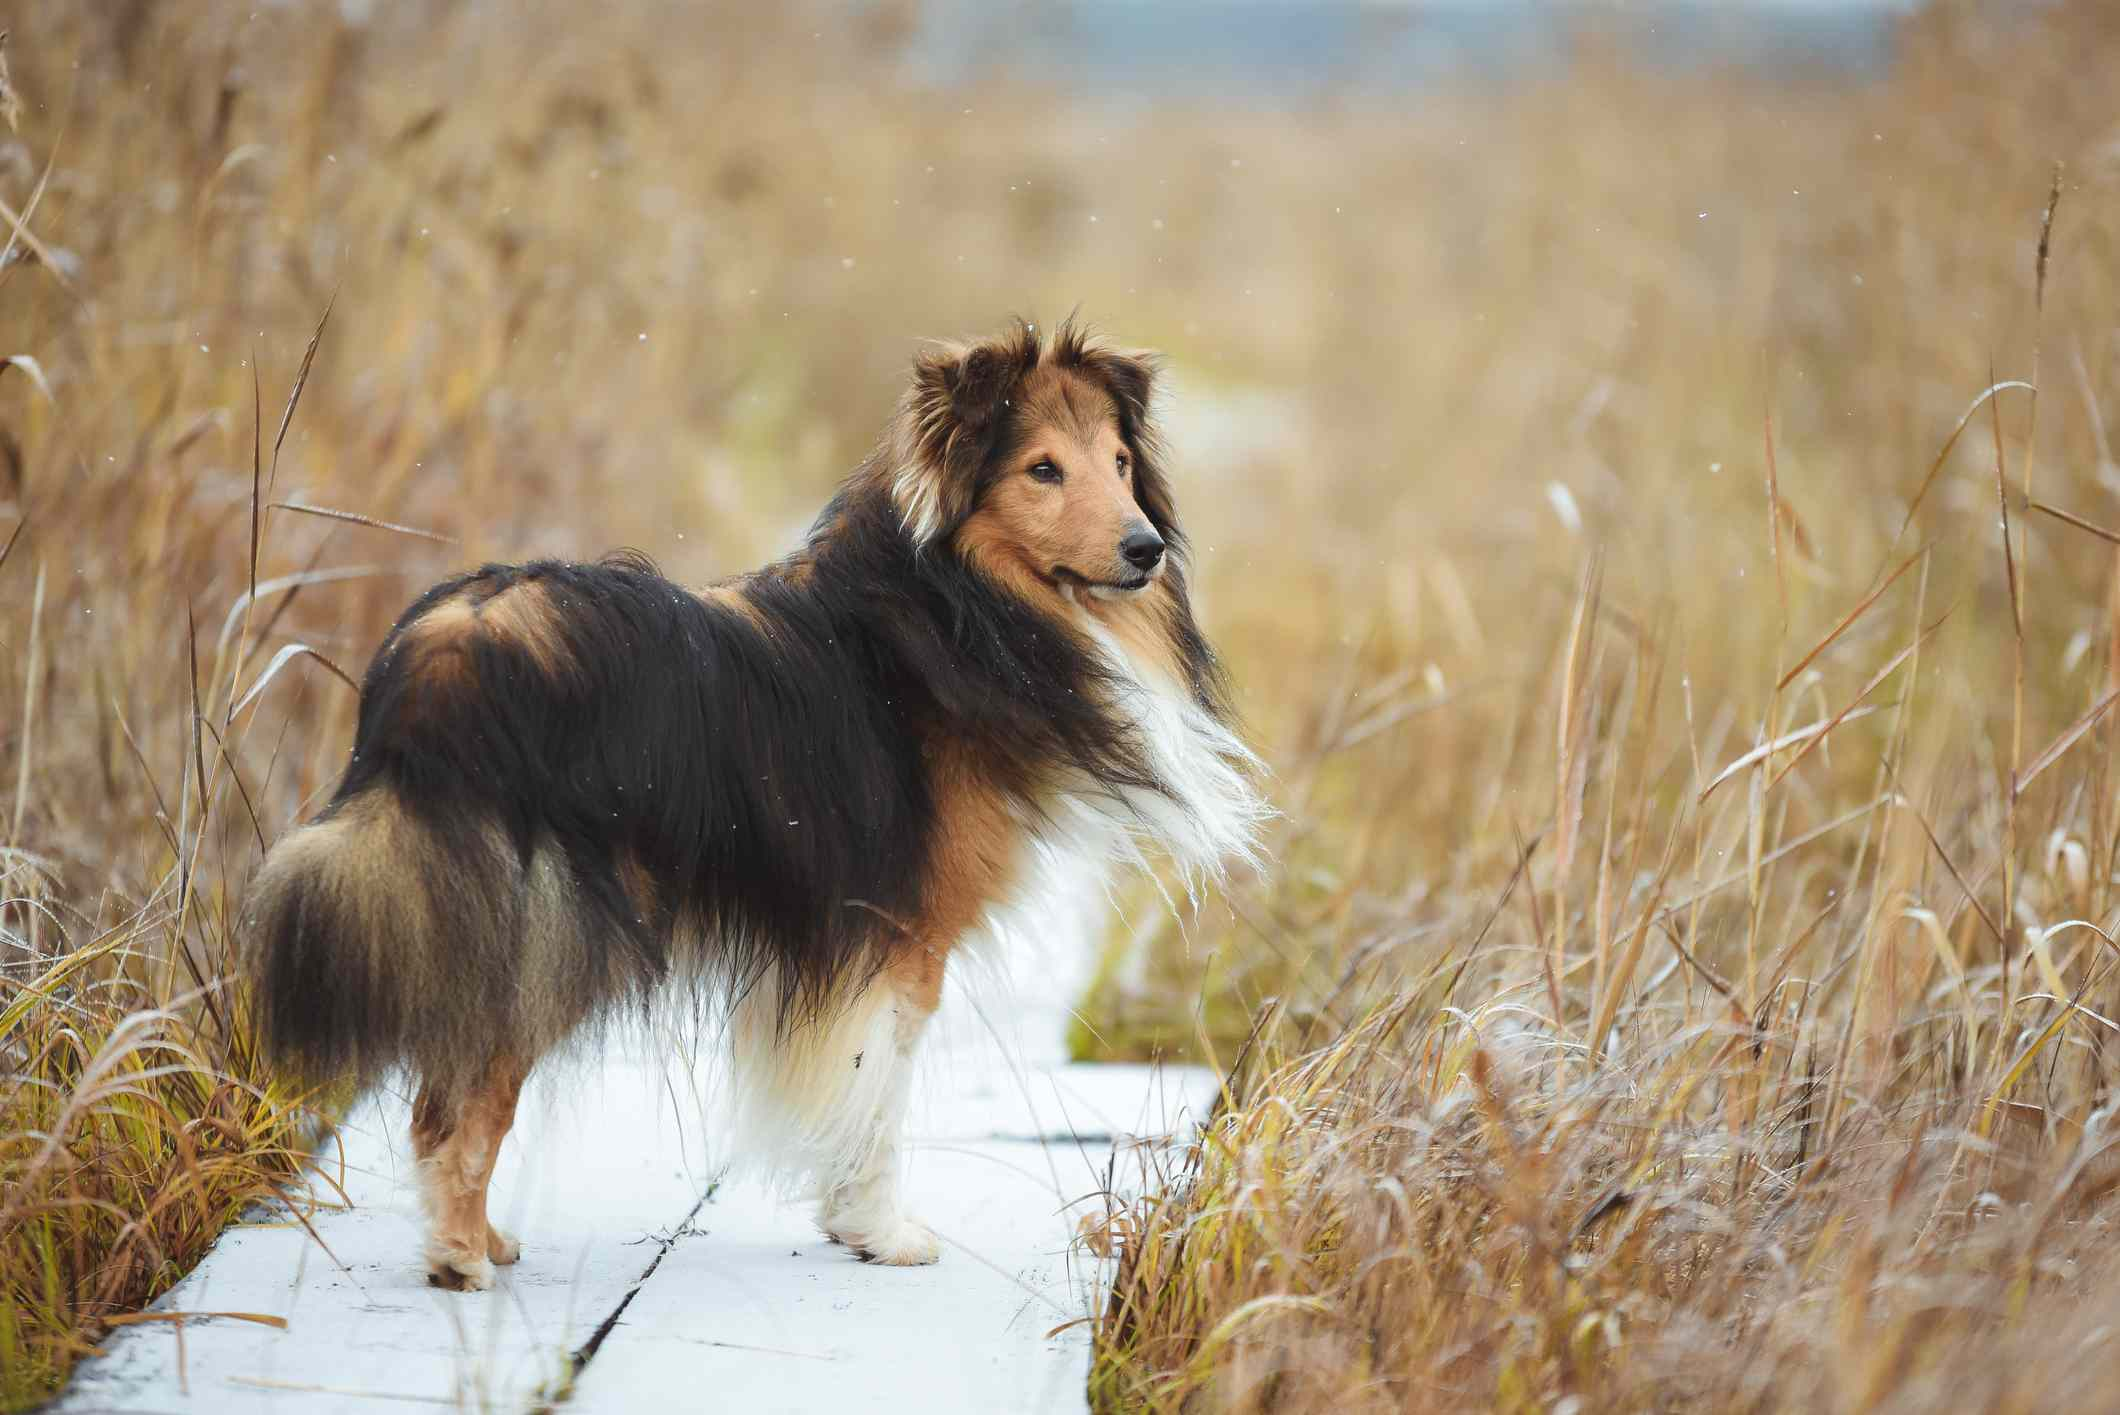 fluffy shetland sheepdog on wooden path surrounded by tall, dry grass